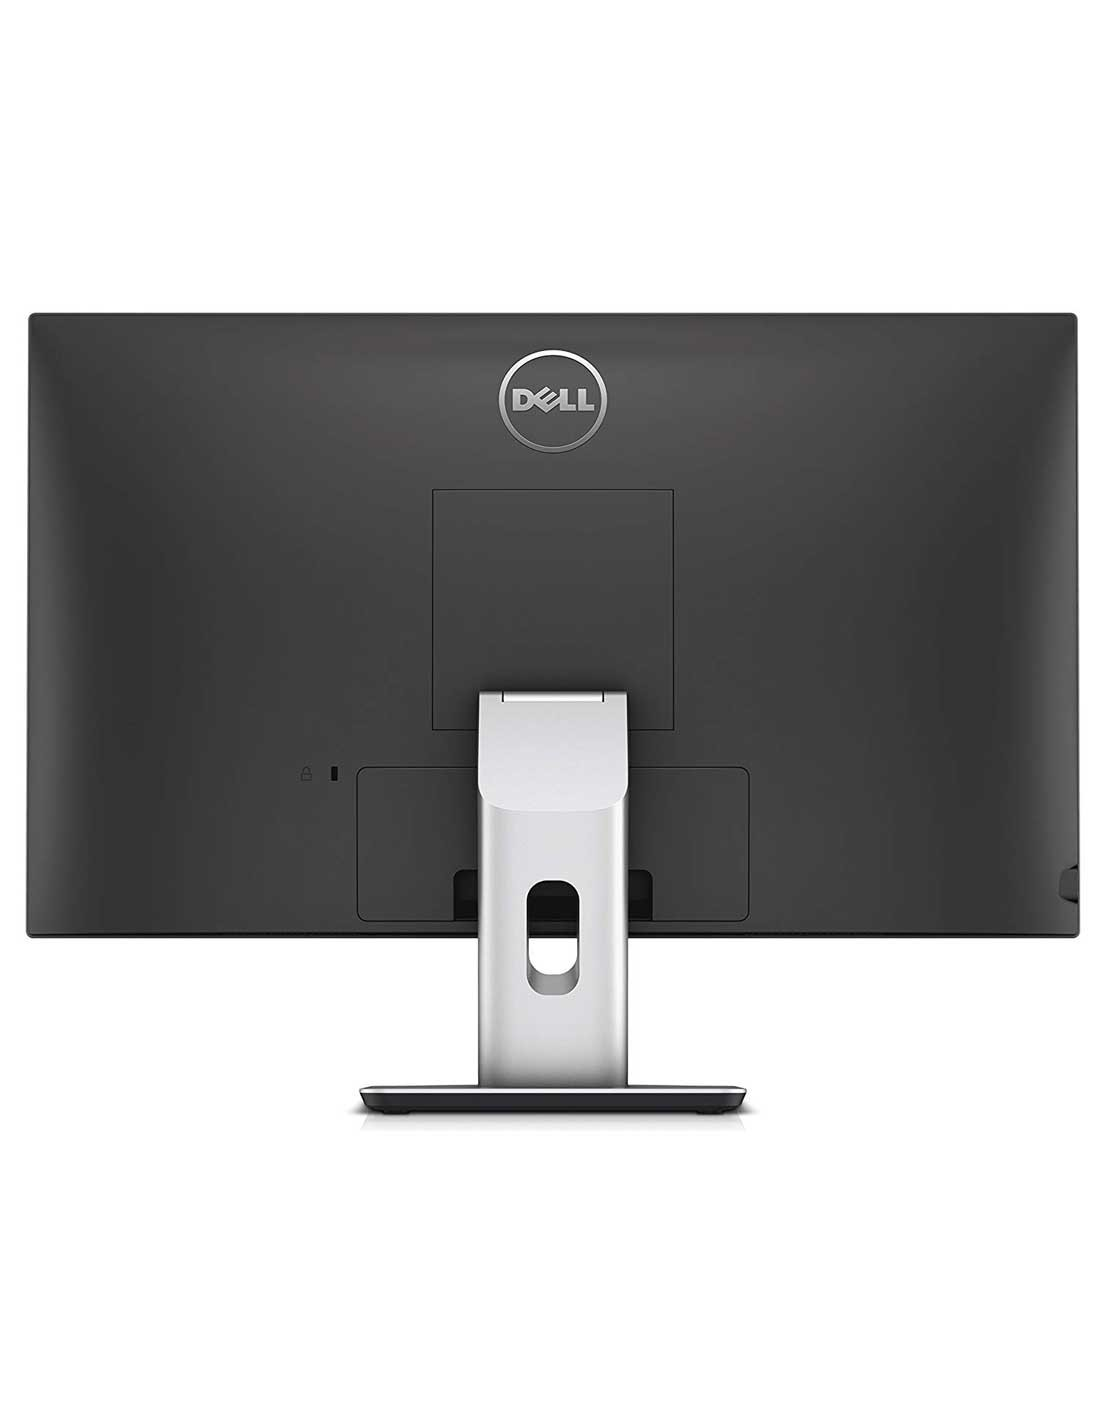 Dell 24-inch Monitor S2415H images and photos in Dubai computer store